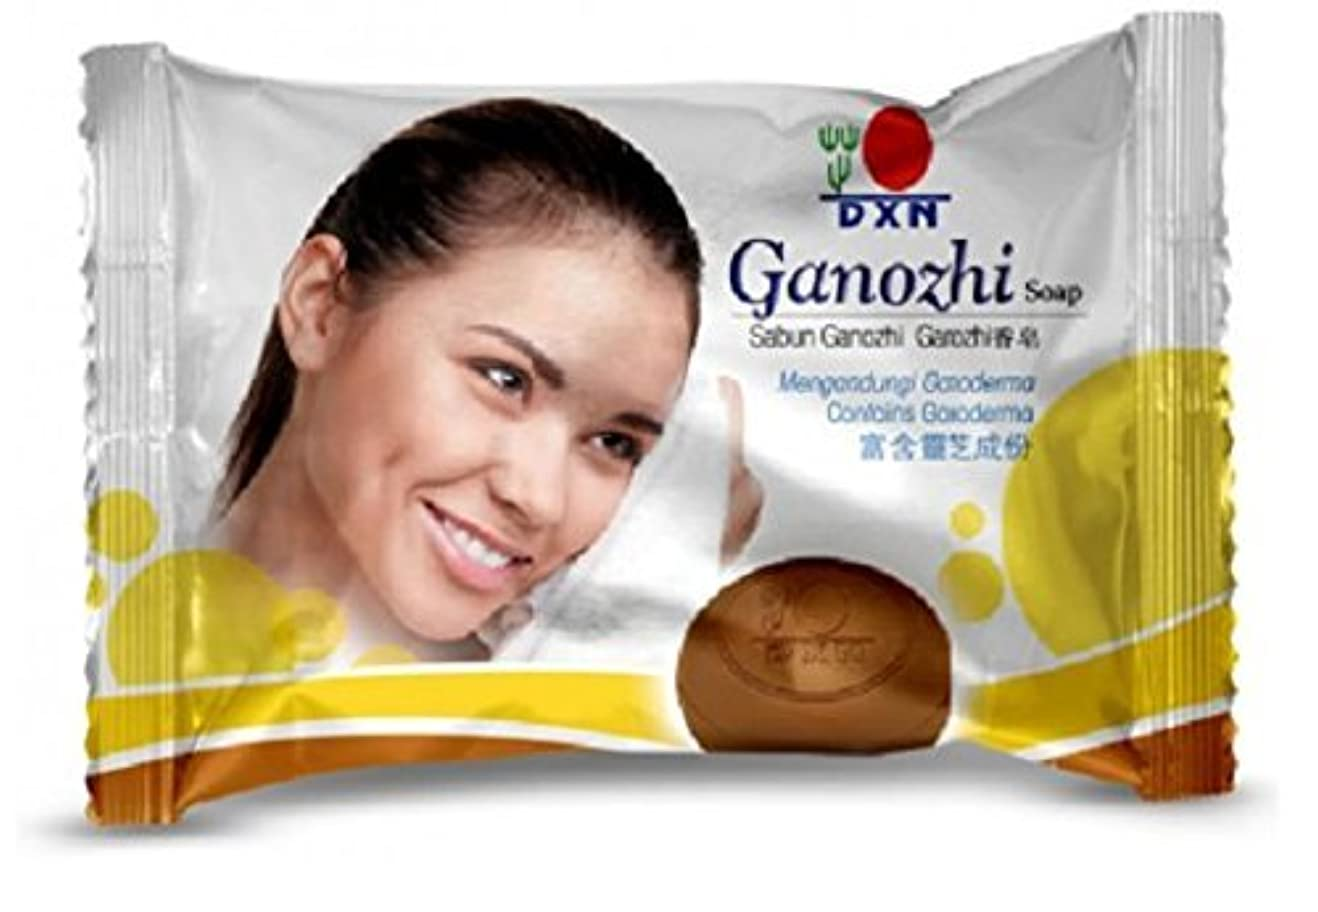 胚レザー多分DXN Ganozhi Soap with Ganoderma Extract (Pack of 2)